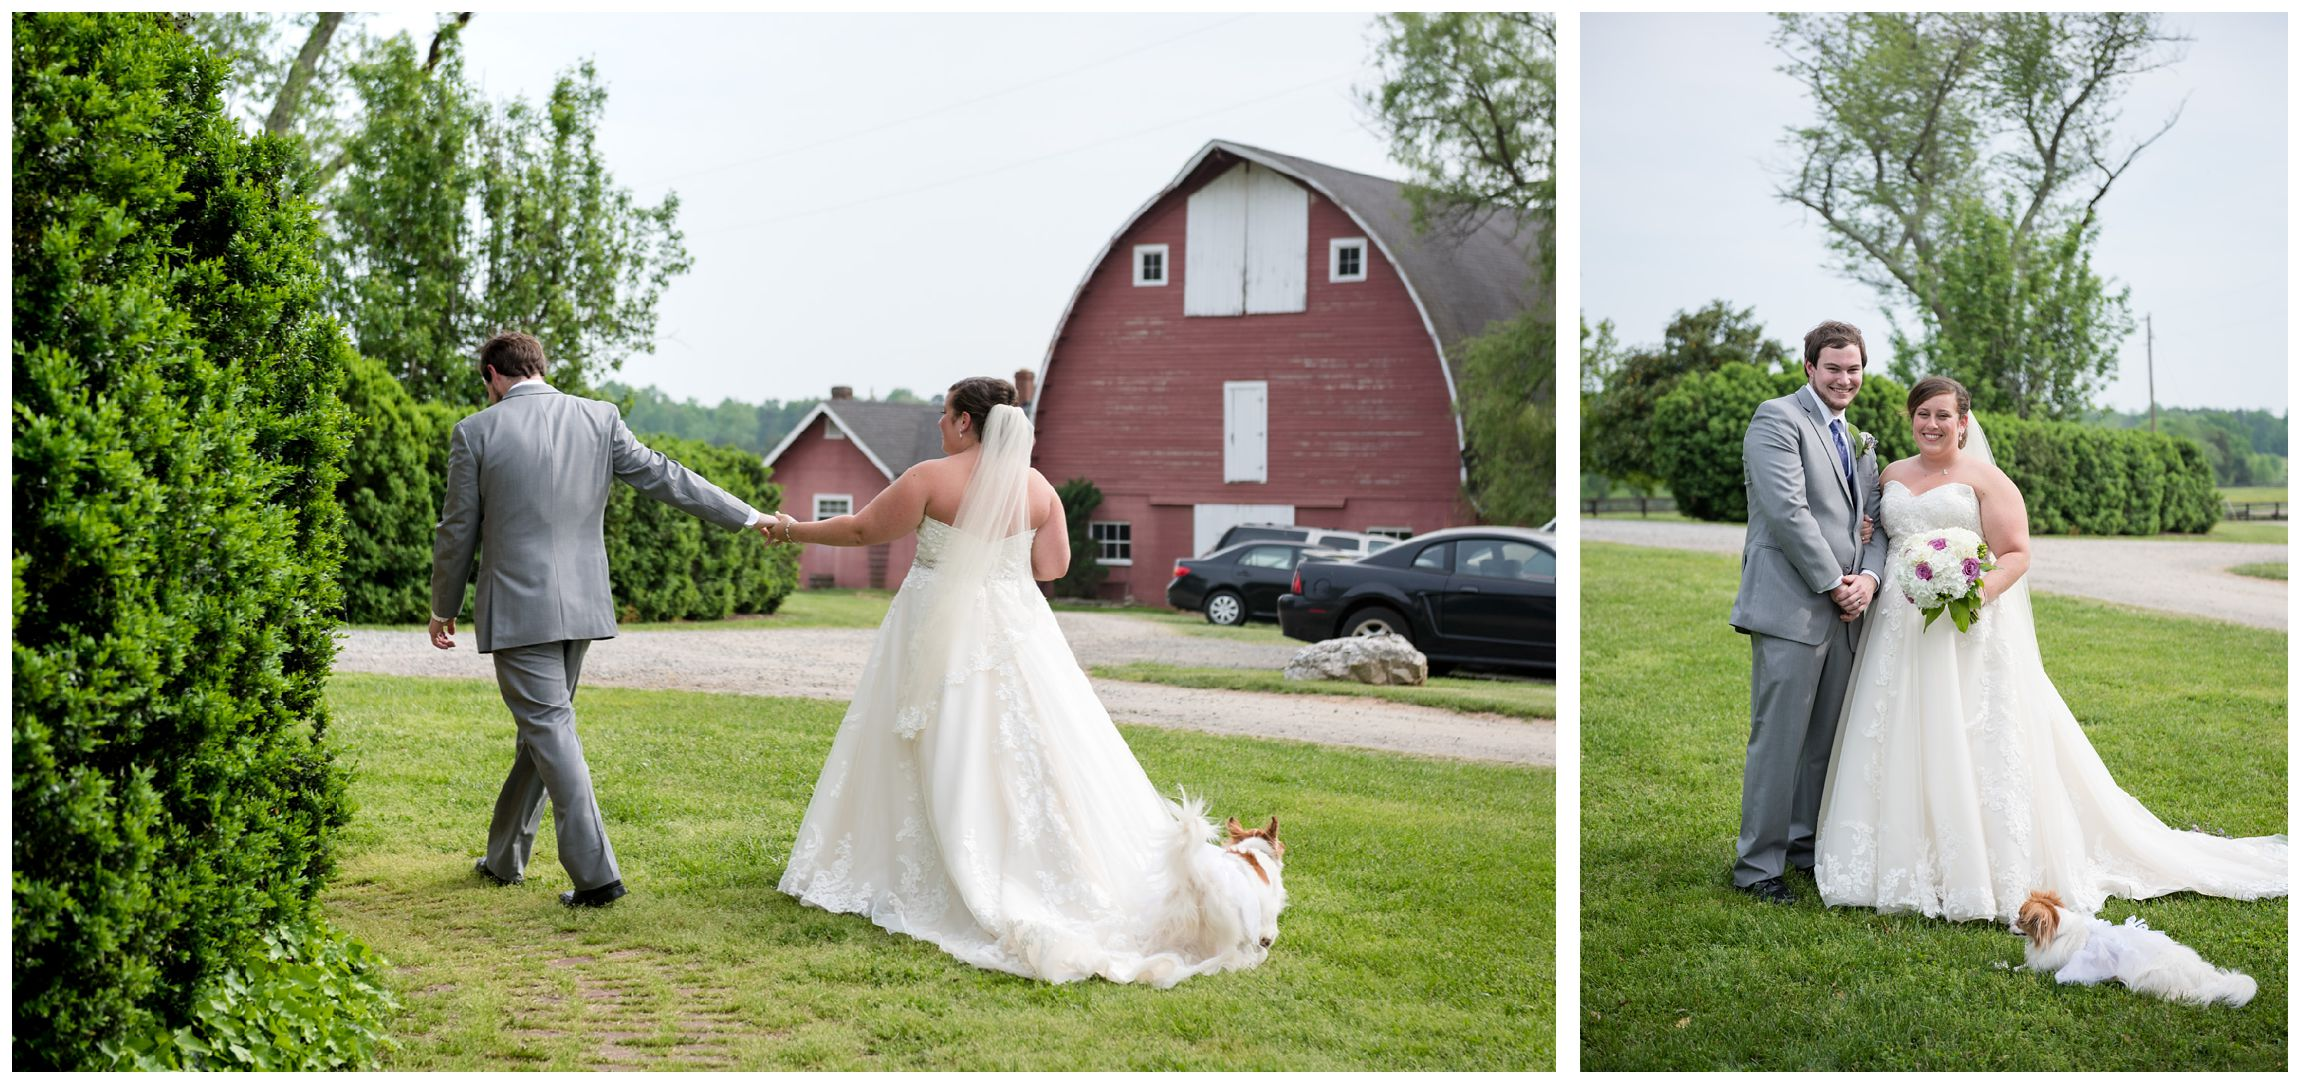 newlyweds after rusting farm wedding in Virginia